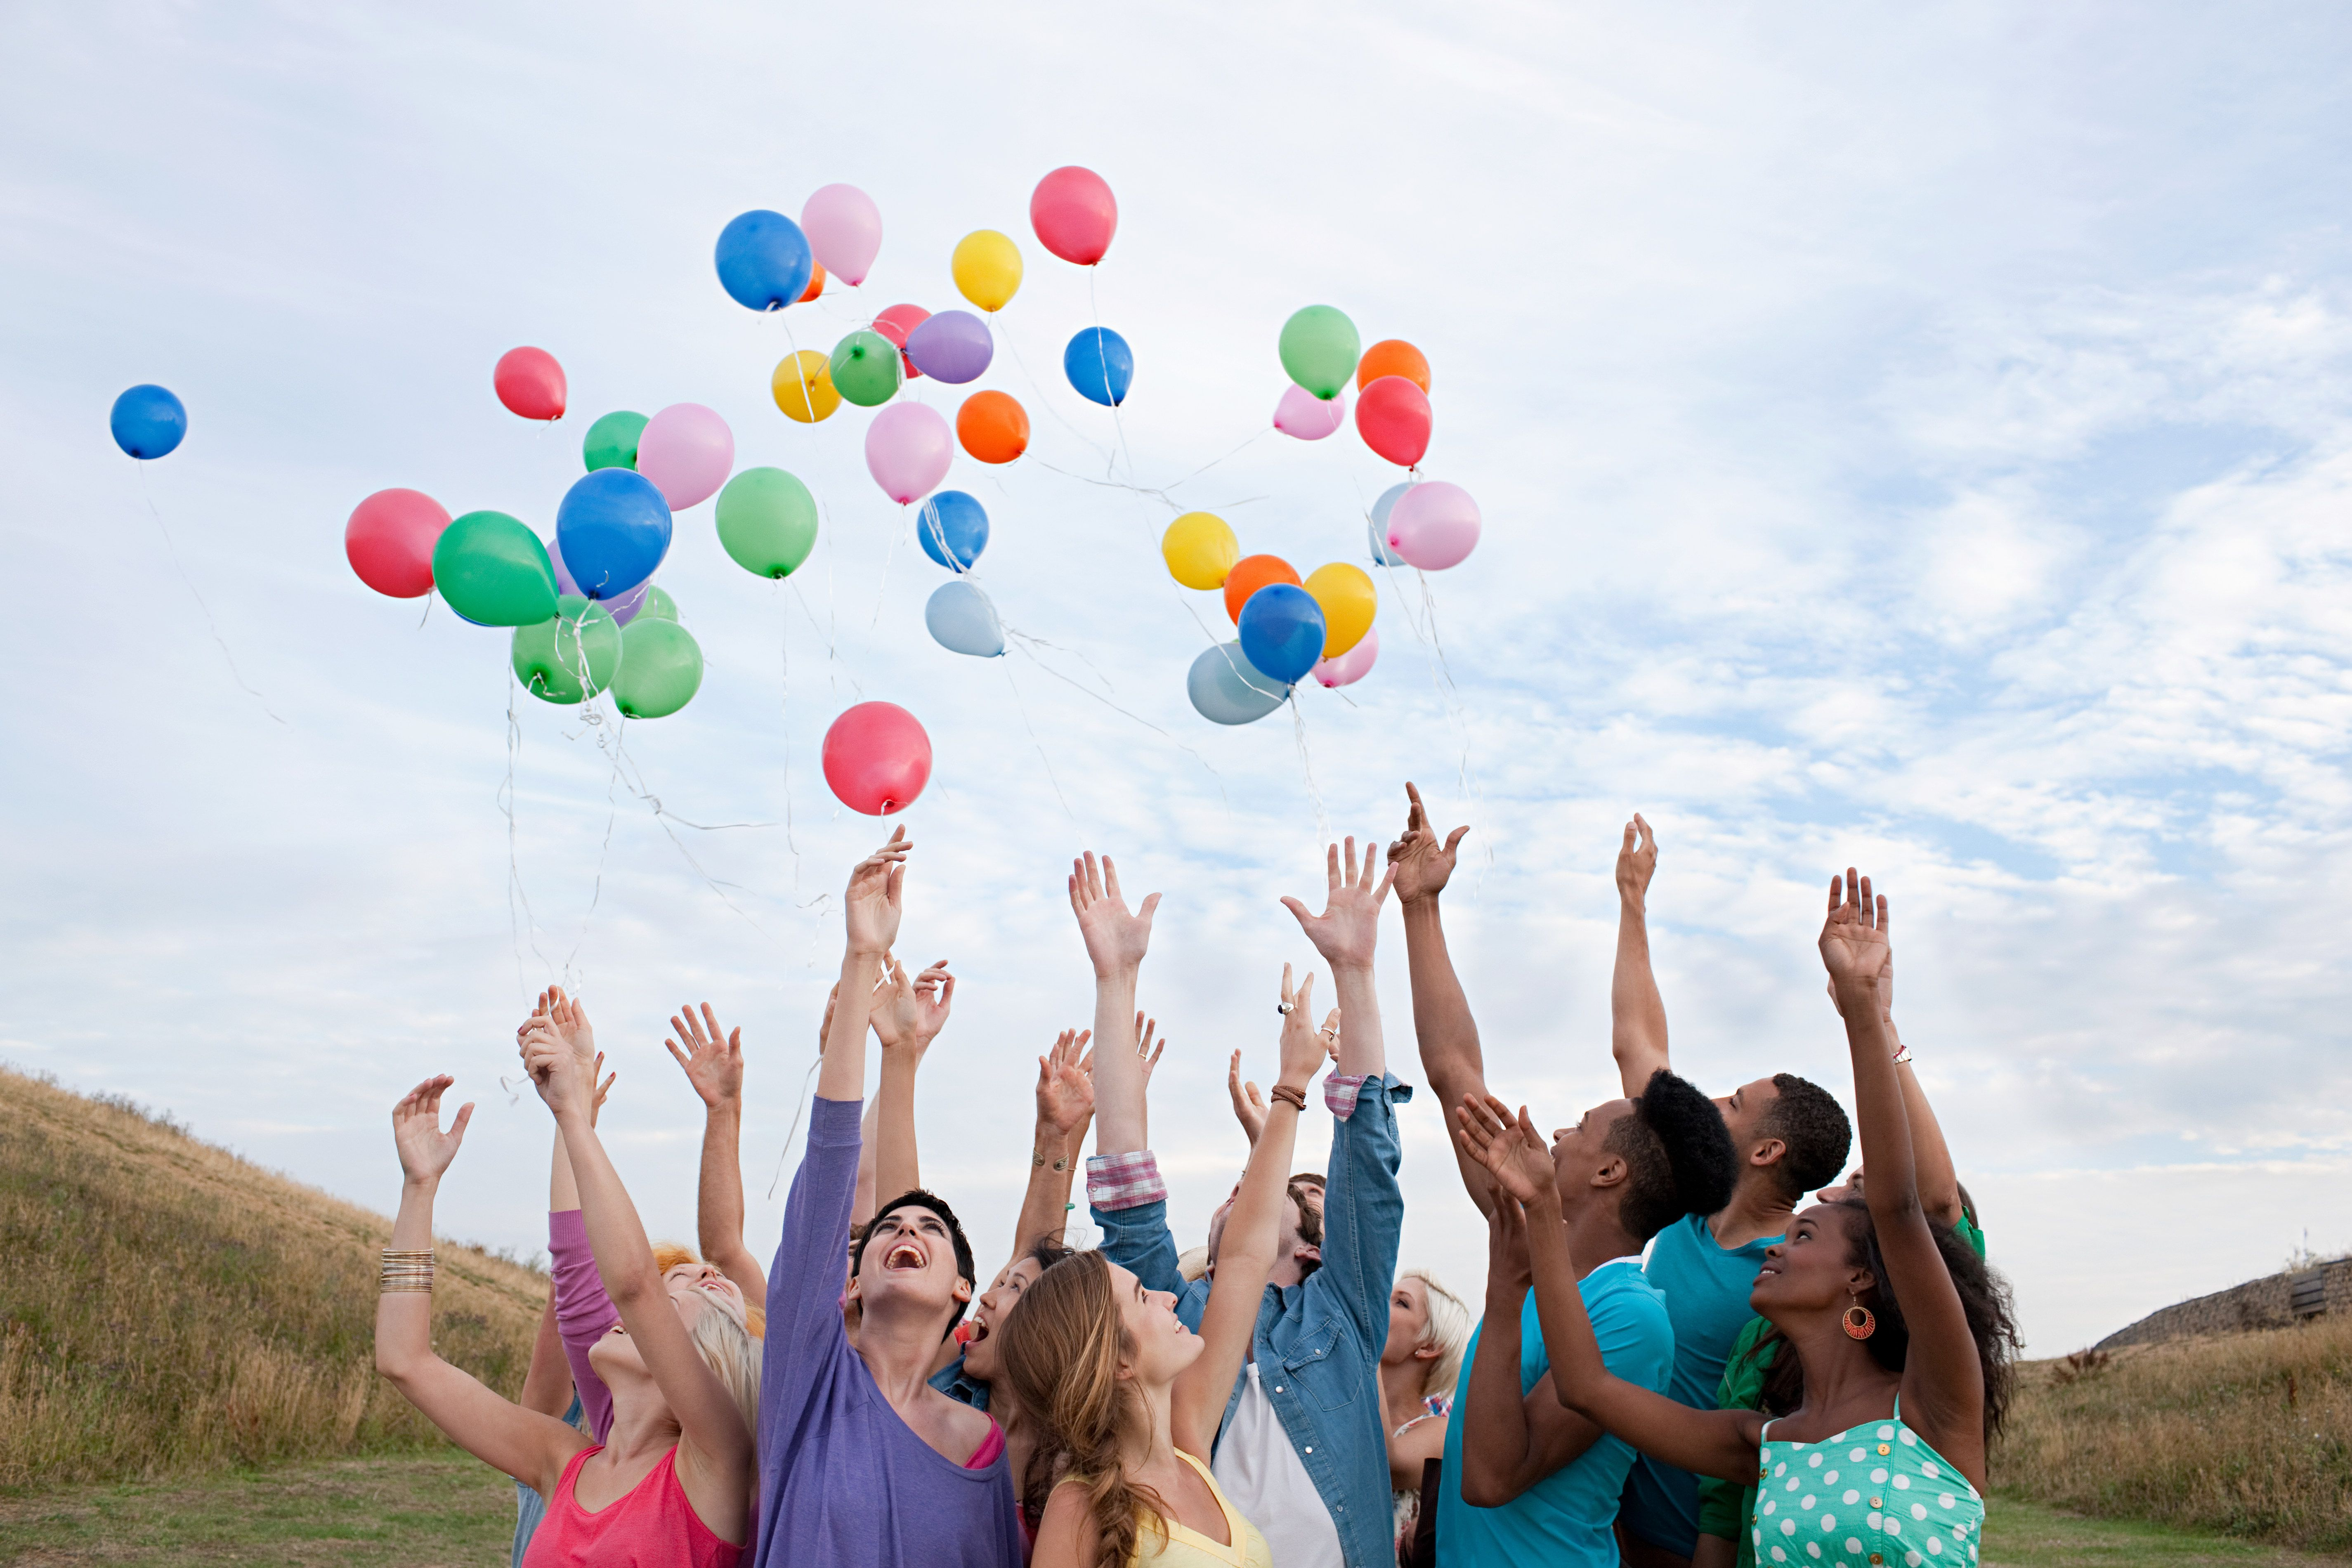 A group of young people releasing balloons